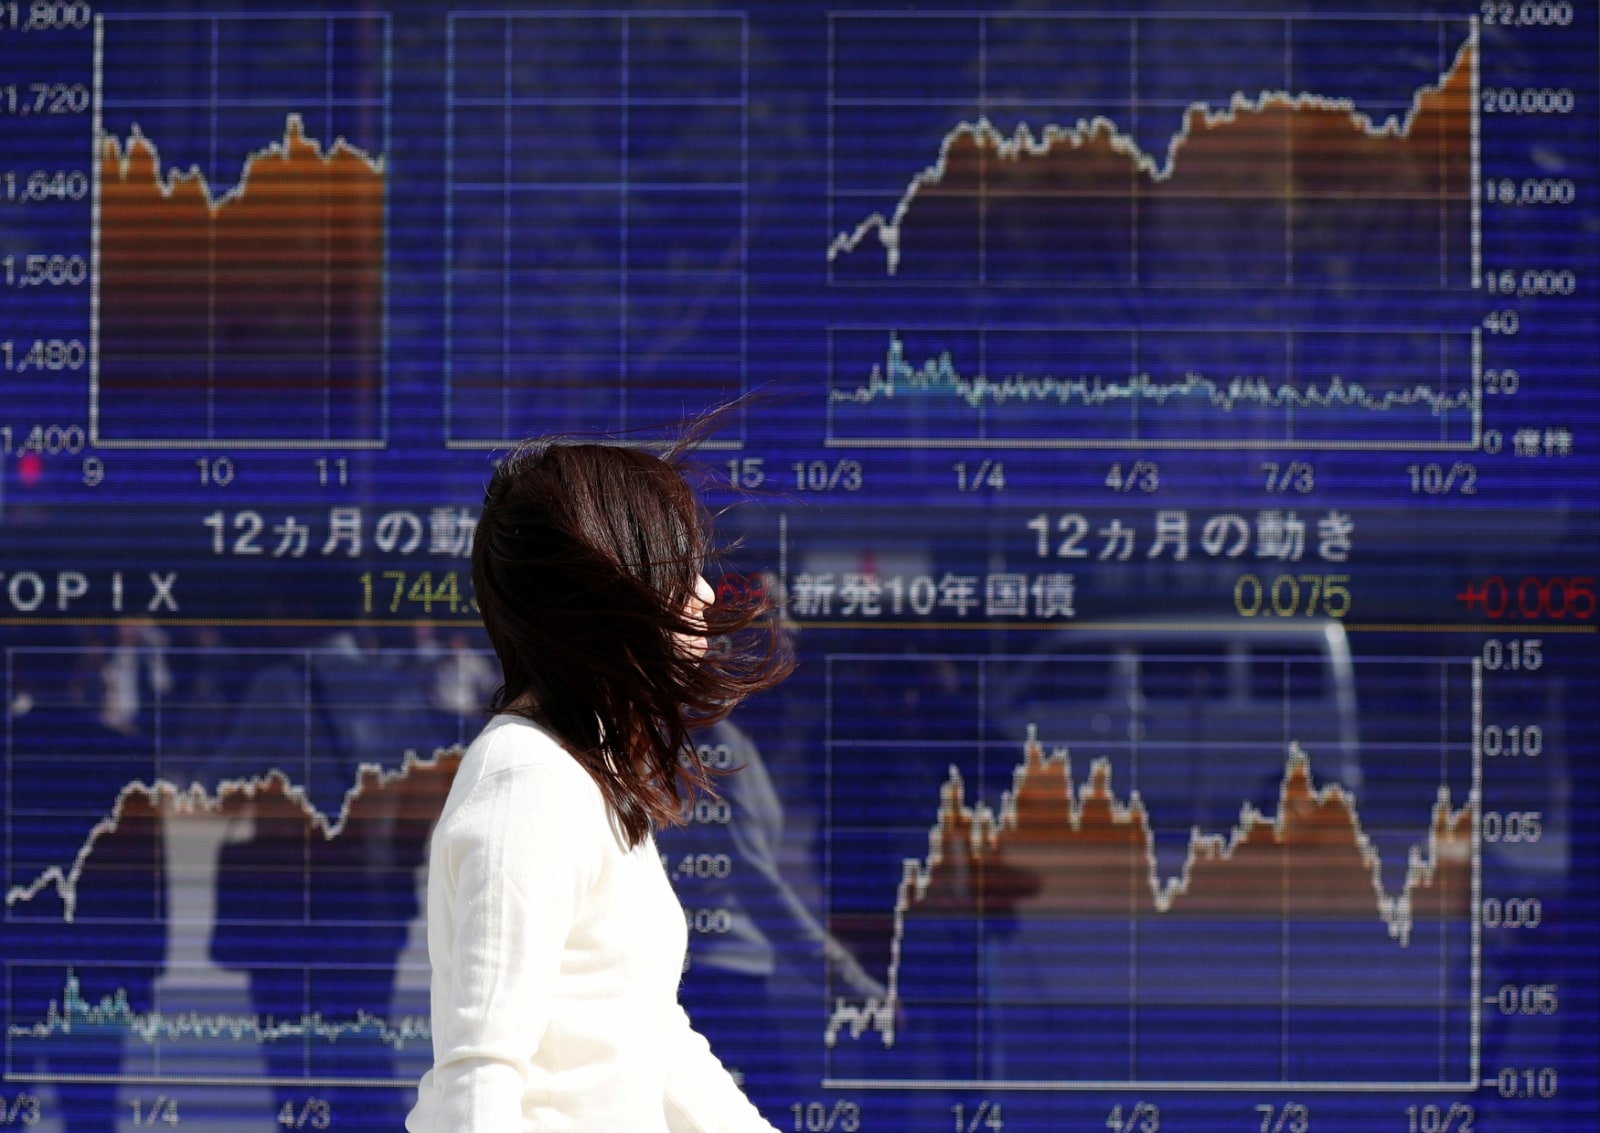 1. Asia: MSCI Asia Pacific index was down 0.79 percent in the morning. The Nikkei in Japan dropped 0.34 percent in early trade, and the Topix also declined 0.44 percent. In South Korea, the Kospi bucked all trends as it rose 0.72 percent. (Image: Reuters)